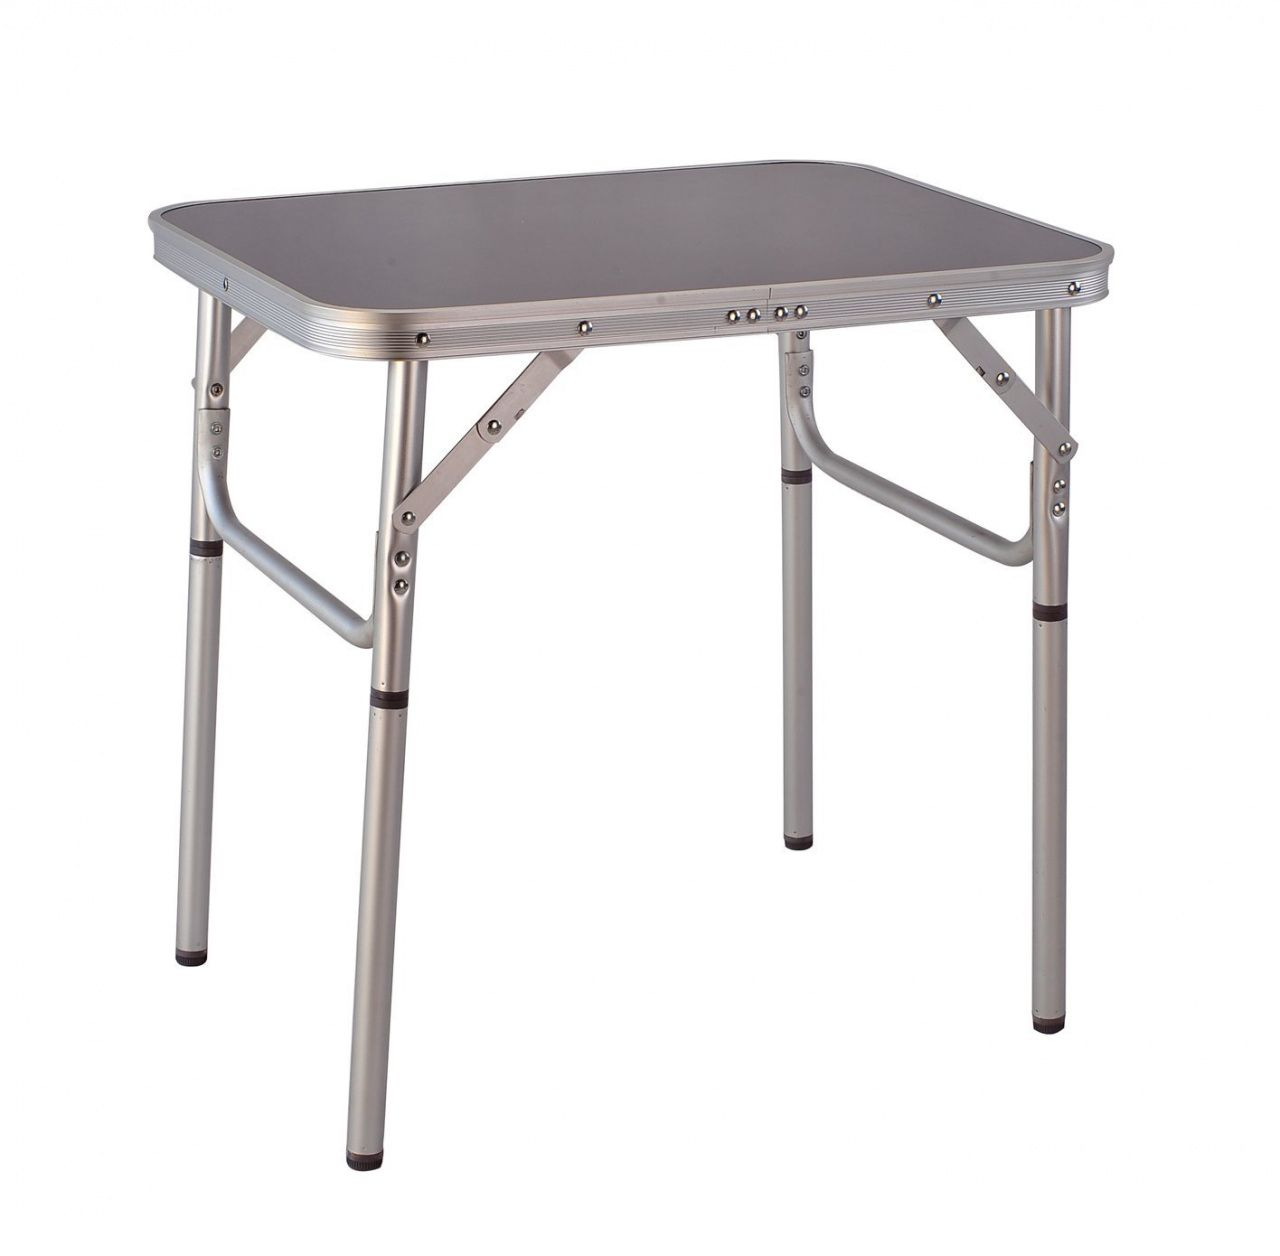 Gentil 50+ Small Foldable Tables   Modern Wood Furniture Check More At Http://